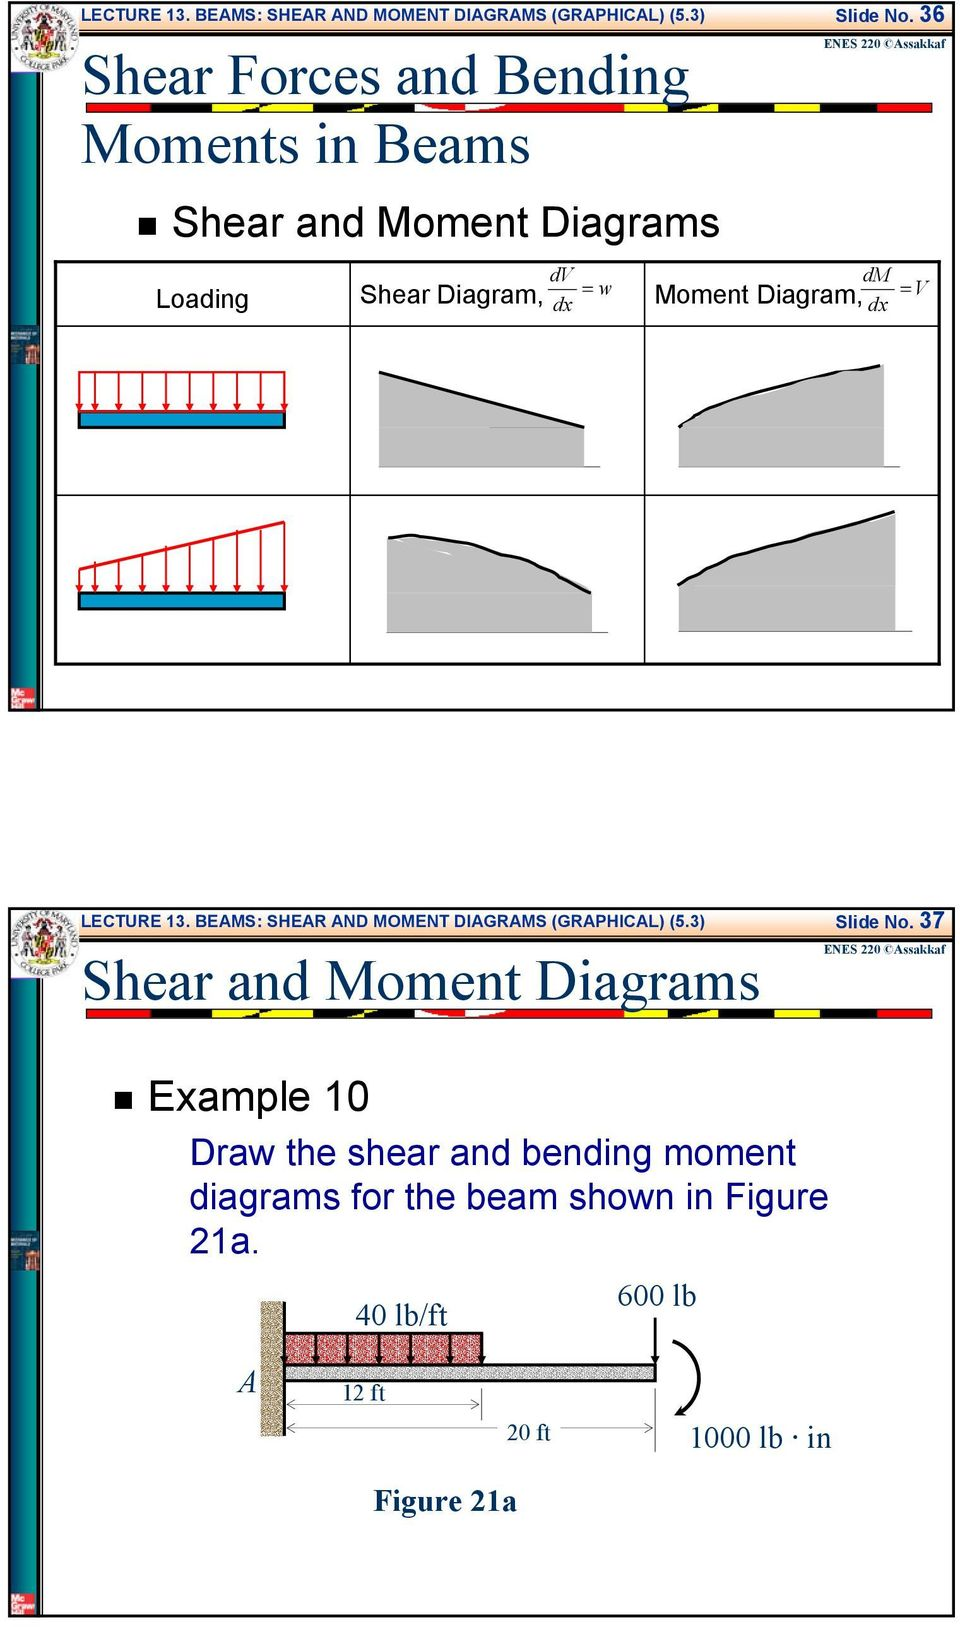 and oment Diagrams Eample 0 Draw the shear and bending moment diagrams for the beam